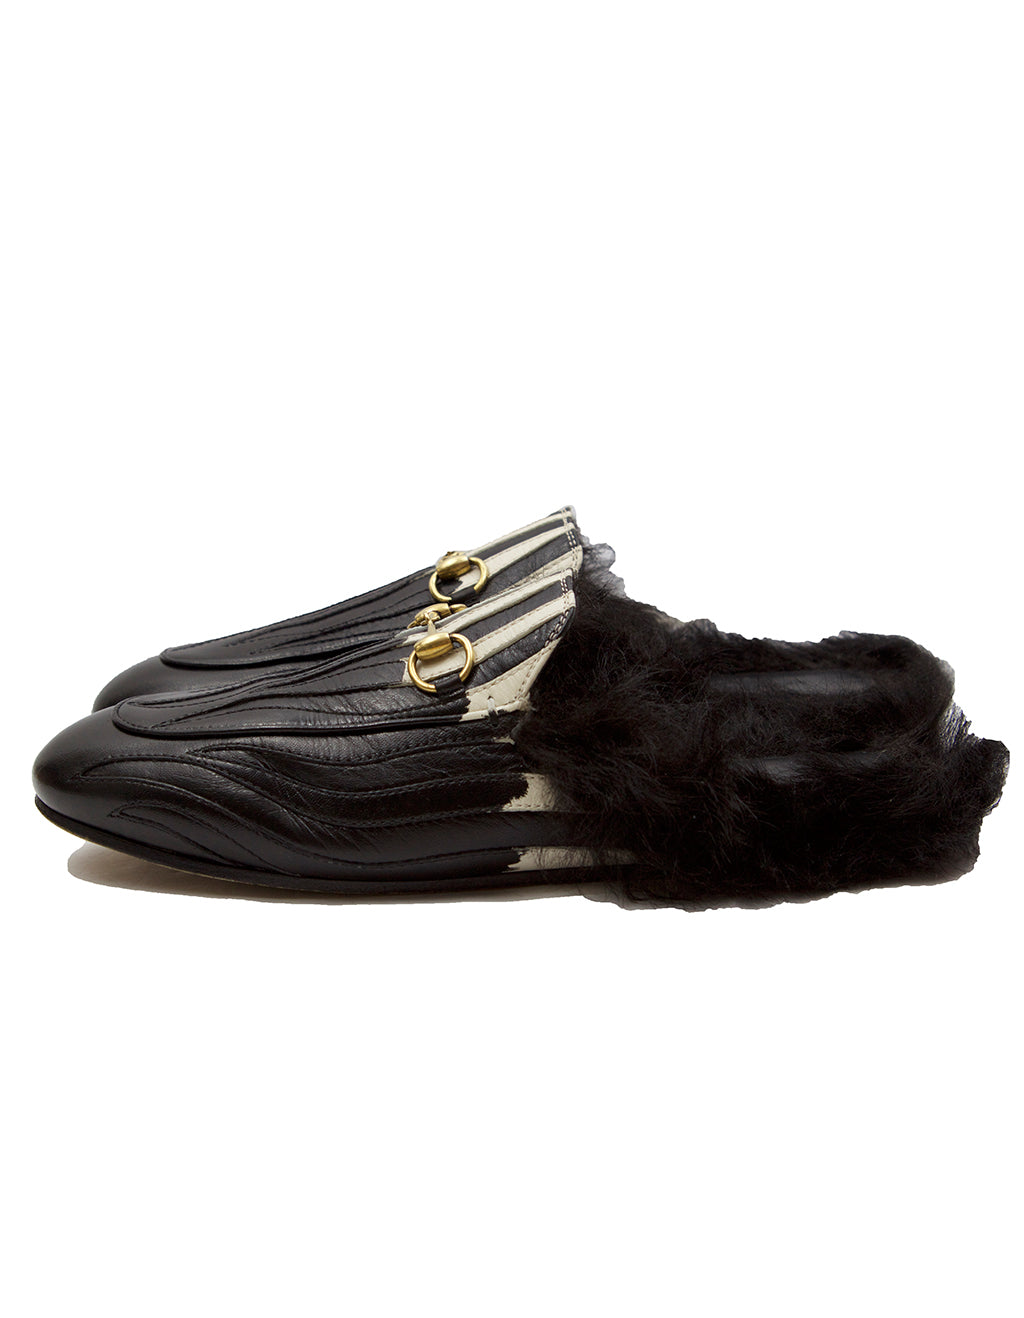 5c9fc53e1a8 Gucci Black Leather Flames Princetown Slippers – Antoinette Boutique